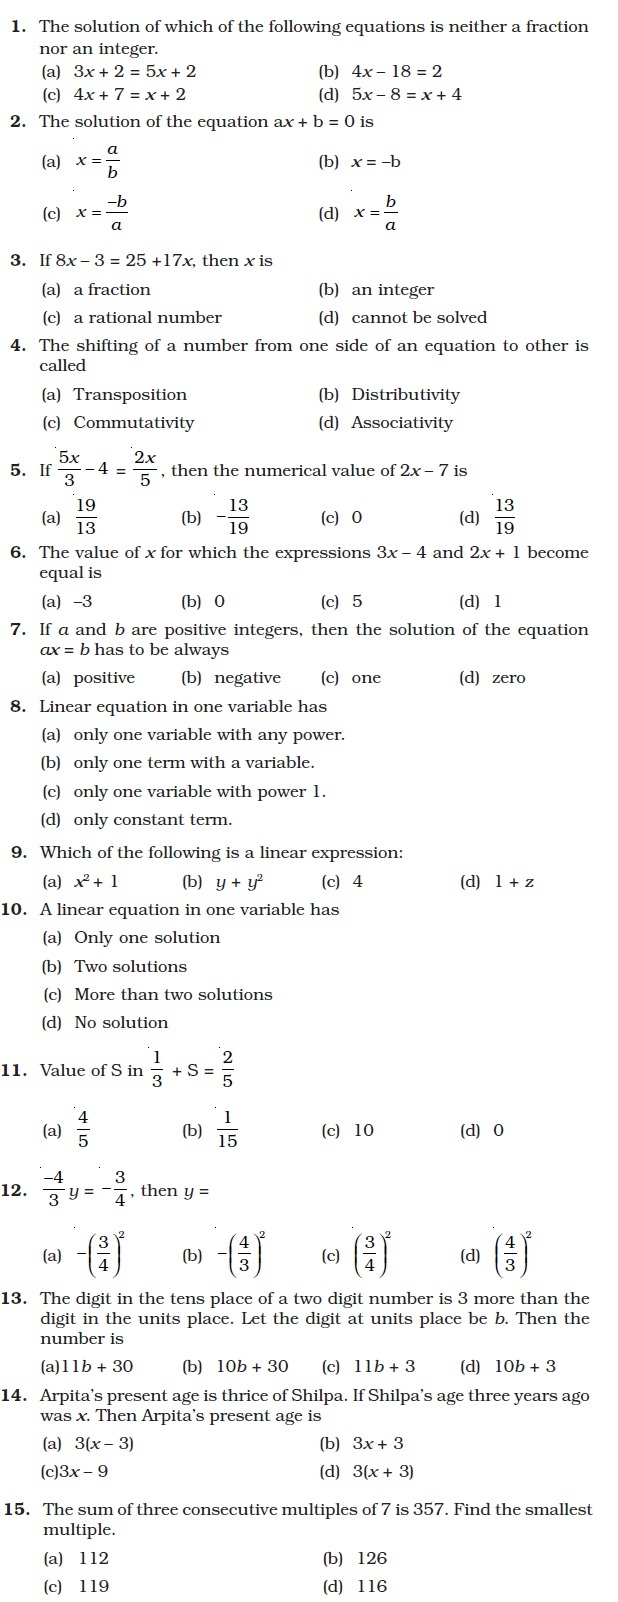 Workbooks solving linear equations with two variables worksheets : Class 8 Important Questions for Maths – Linear Equations in One ...